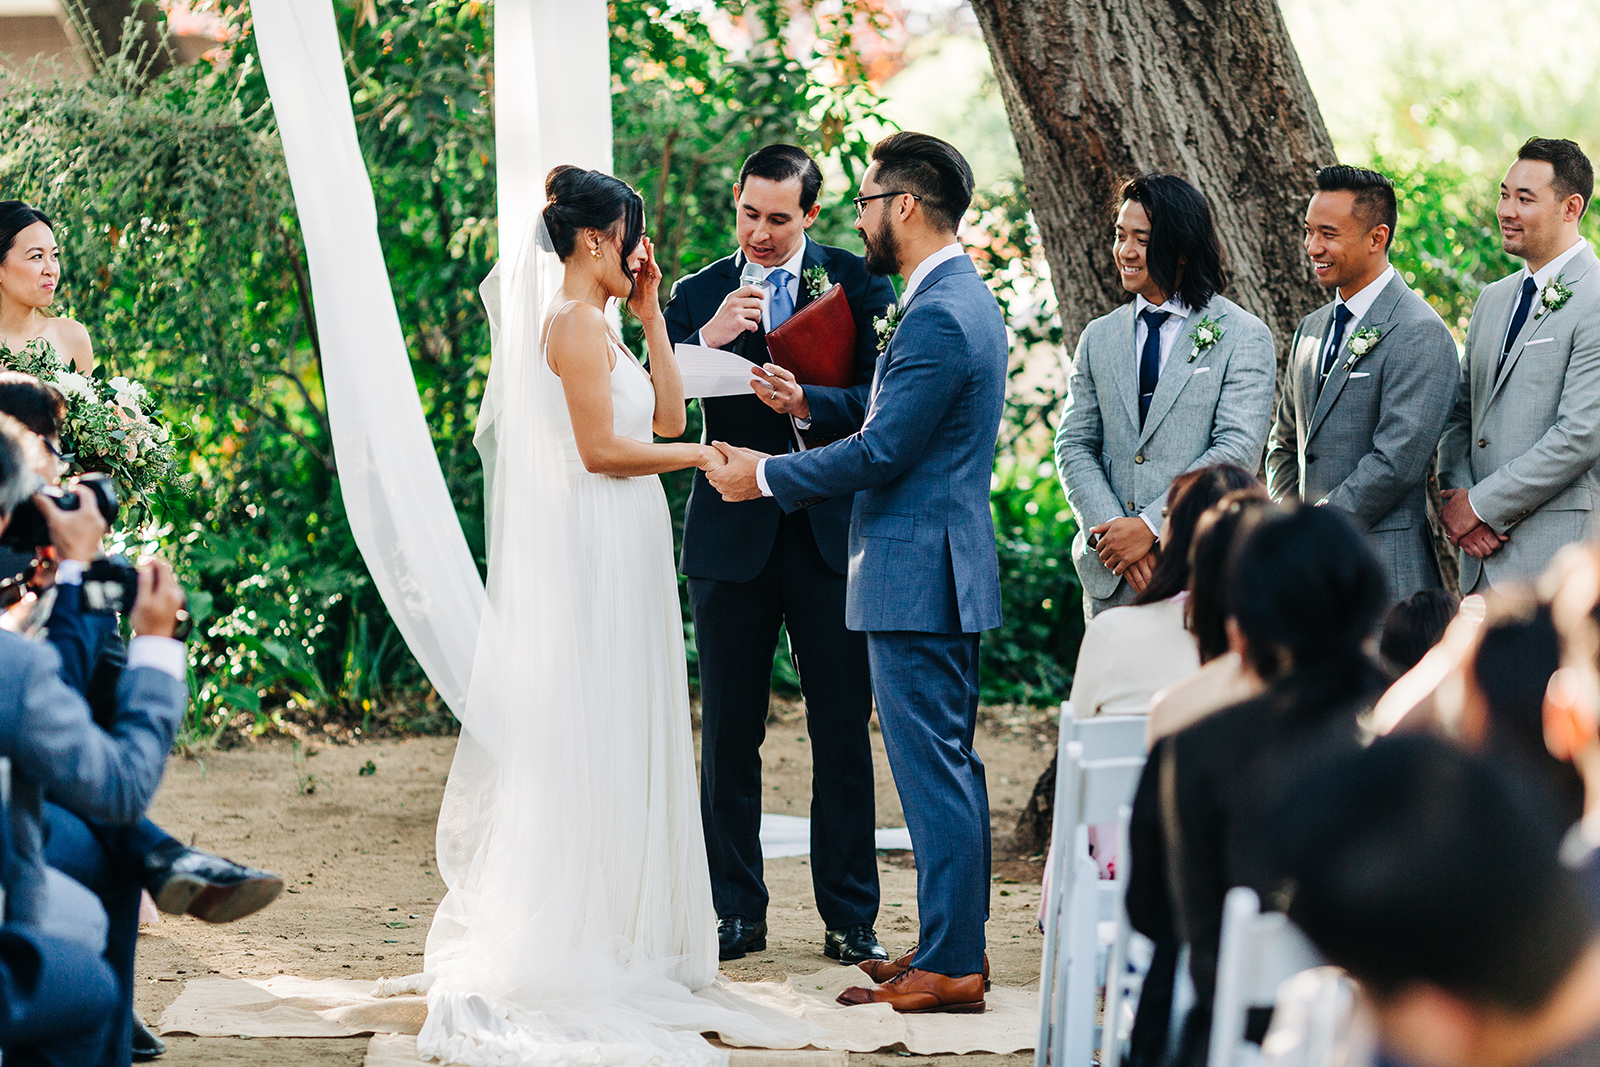 Los-Altos-History-Museum-Wedding_Orange-County-Wedding-Photographer_Clarisse-Rae-Photo-Video_57